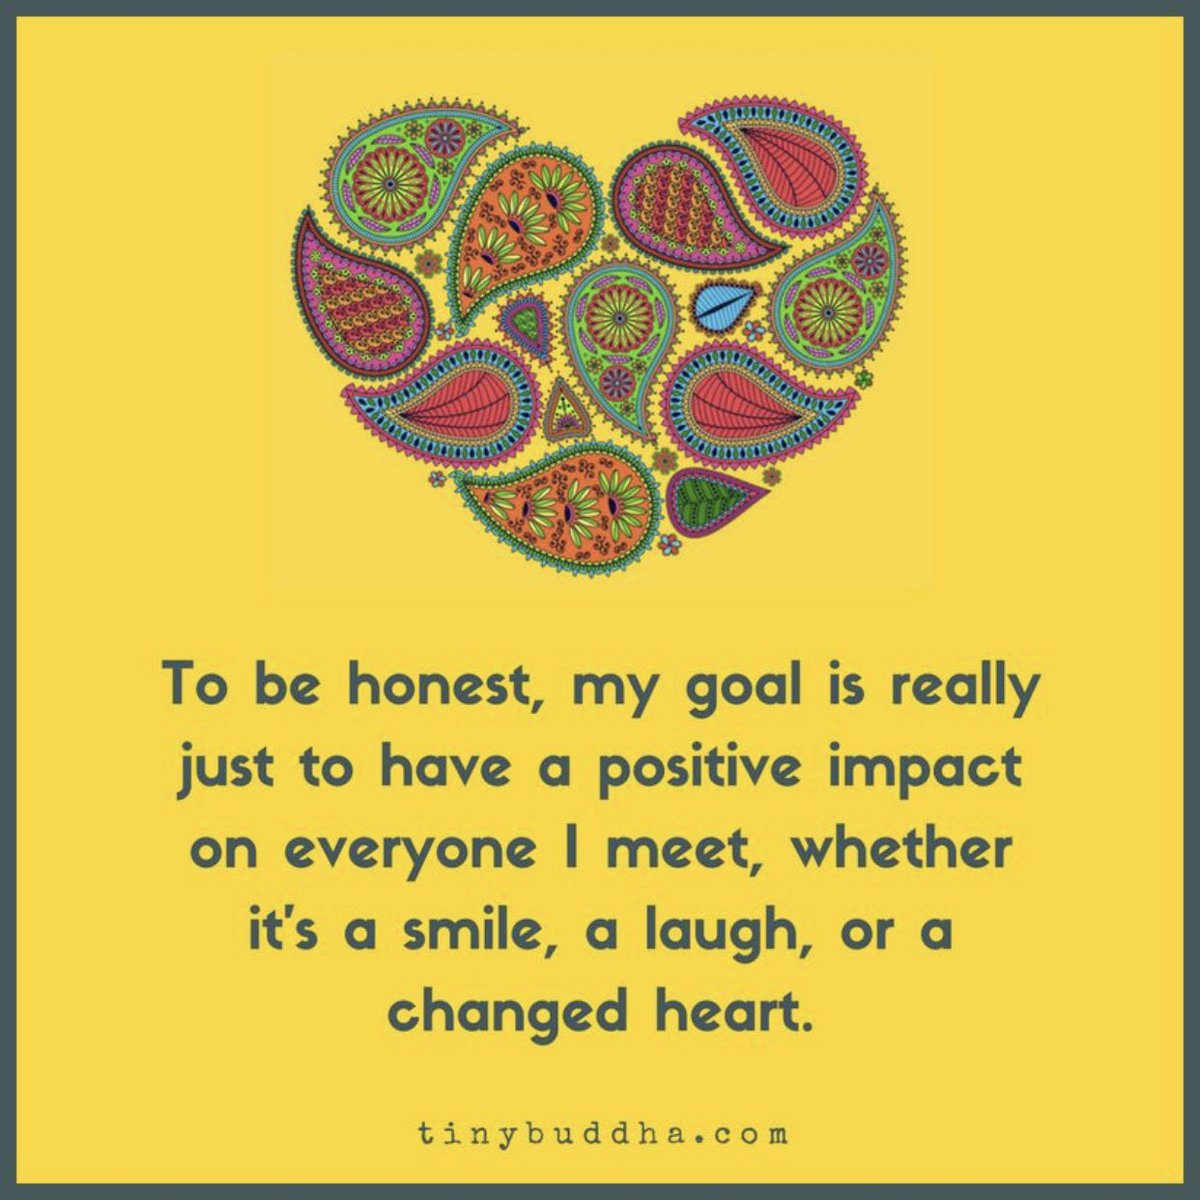 Have a positive impact 💛🥰 #LoveLiteracyLearning